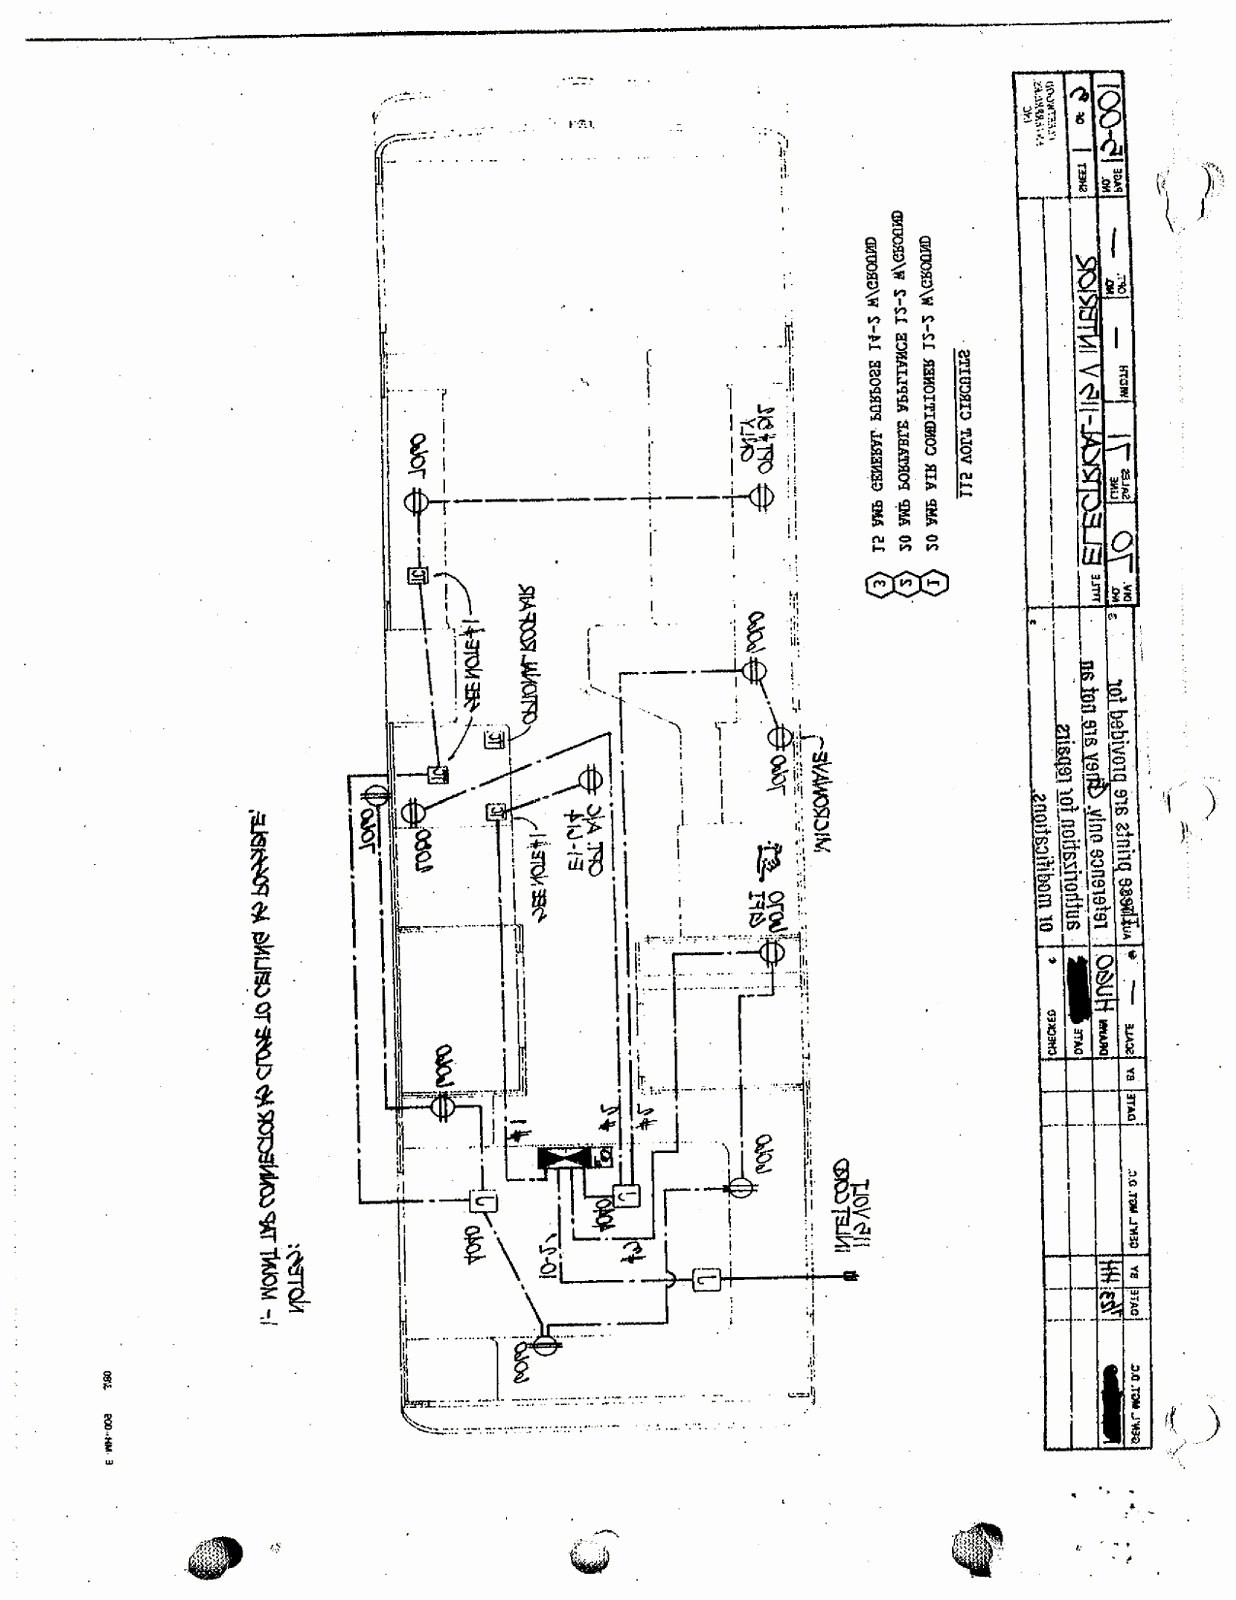 Diagram Fleetwood Wiring Diagram Full Version Hd